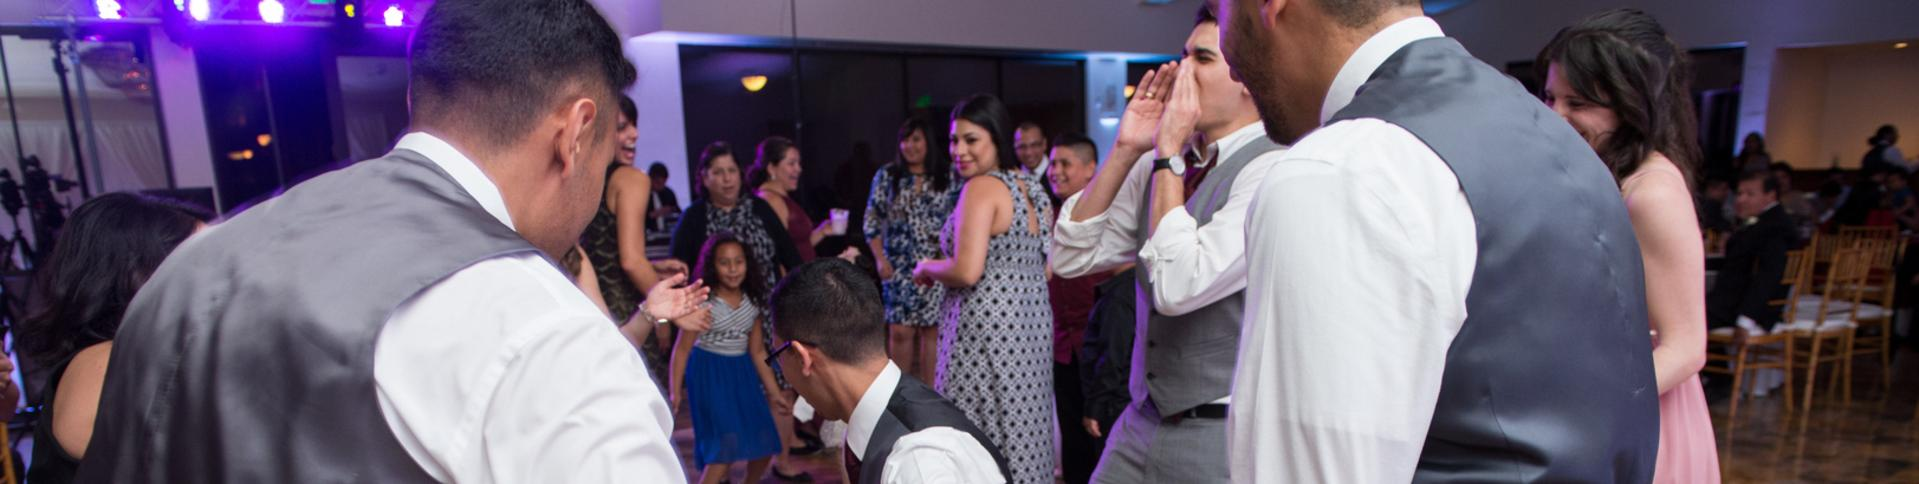 One Sound Productions - Event and Wedding DJ in San Antonio | Limelight Photography